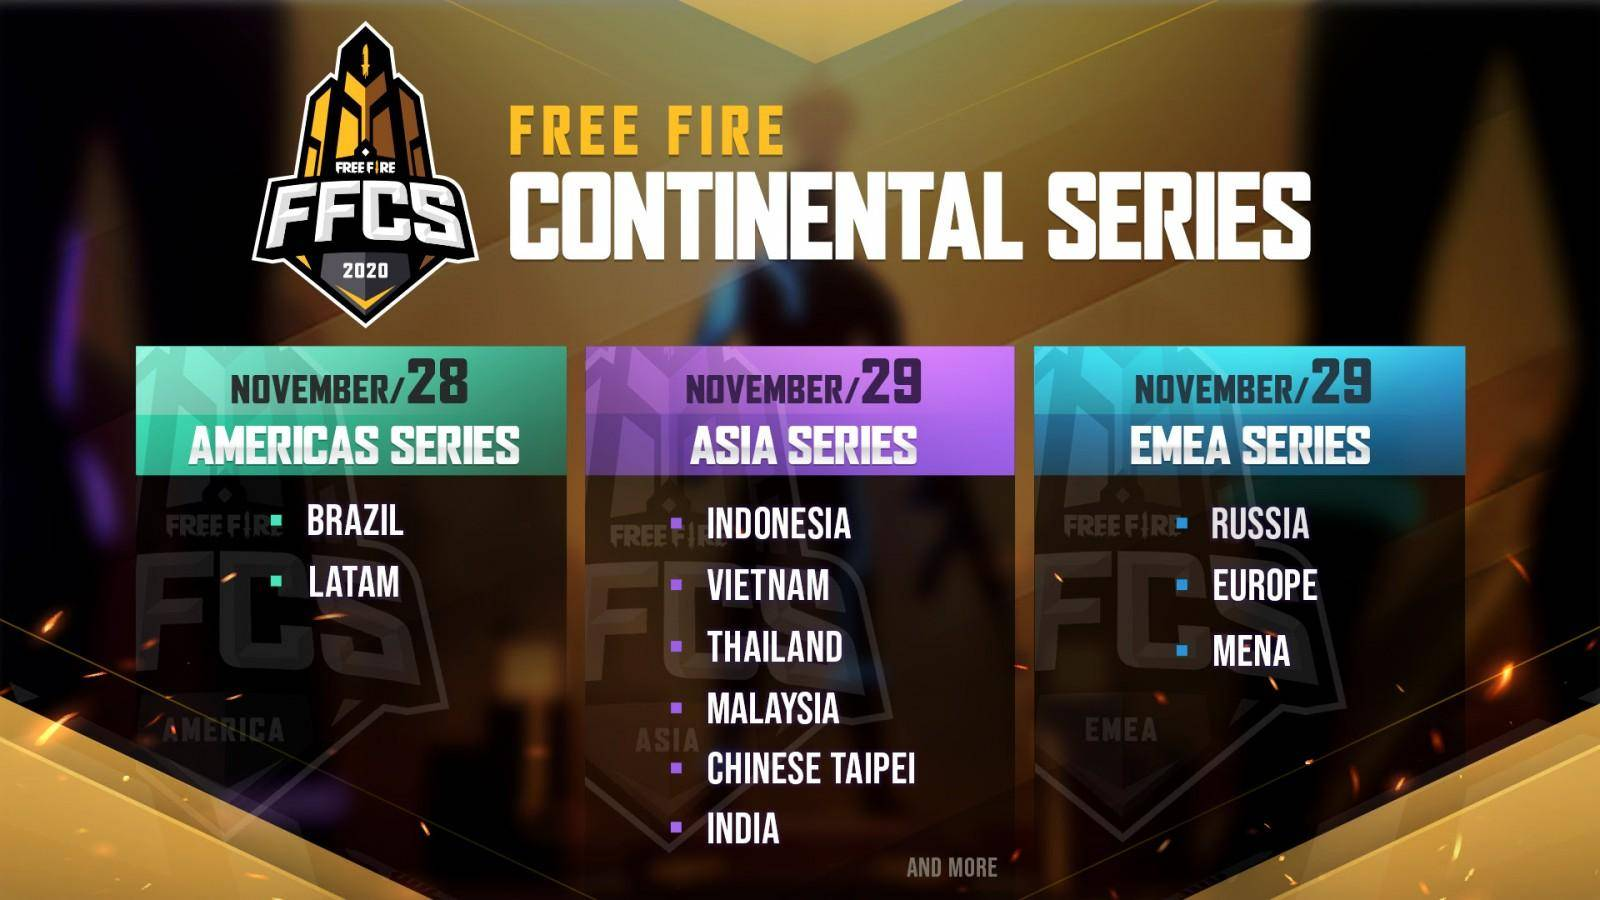 Free Fire Continental Series. 1